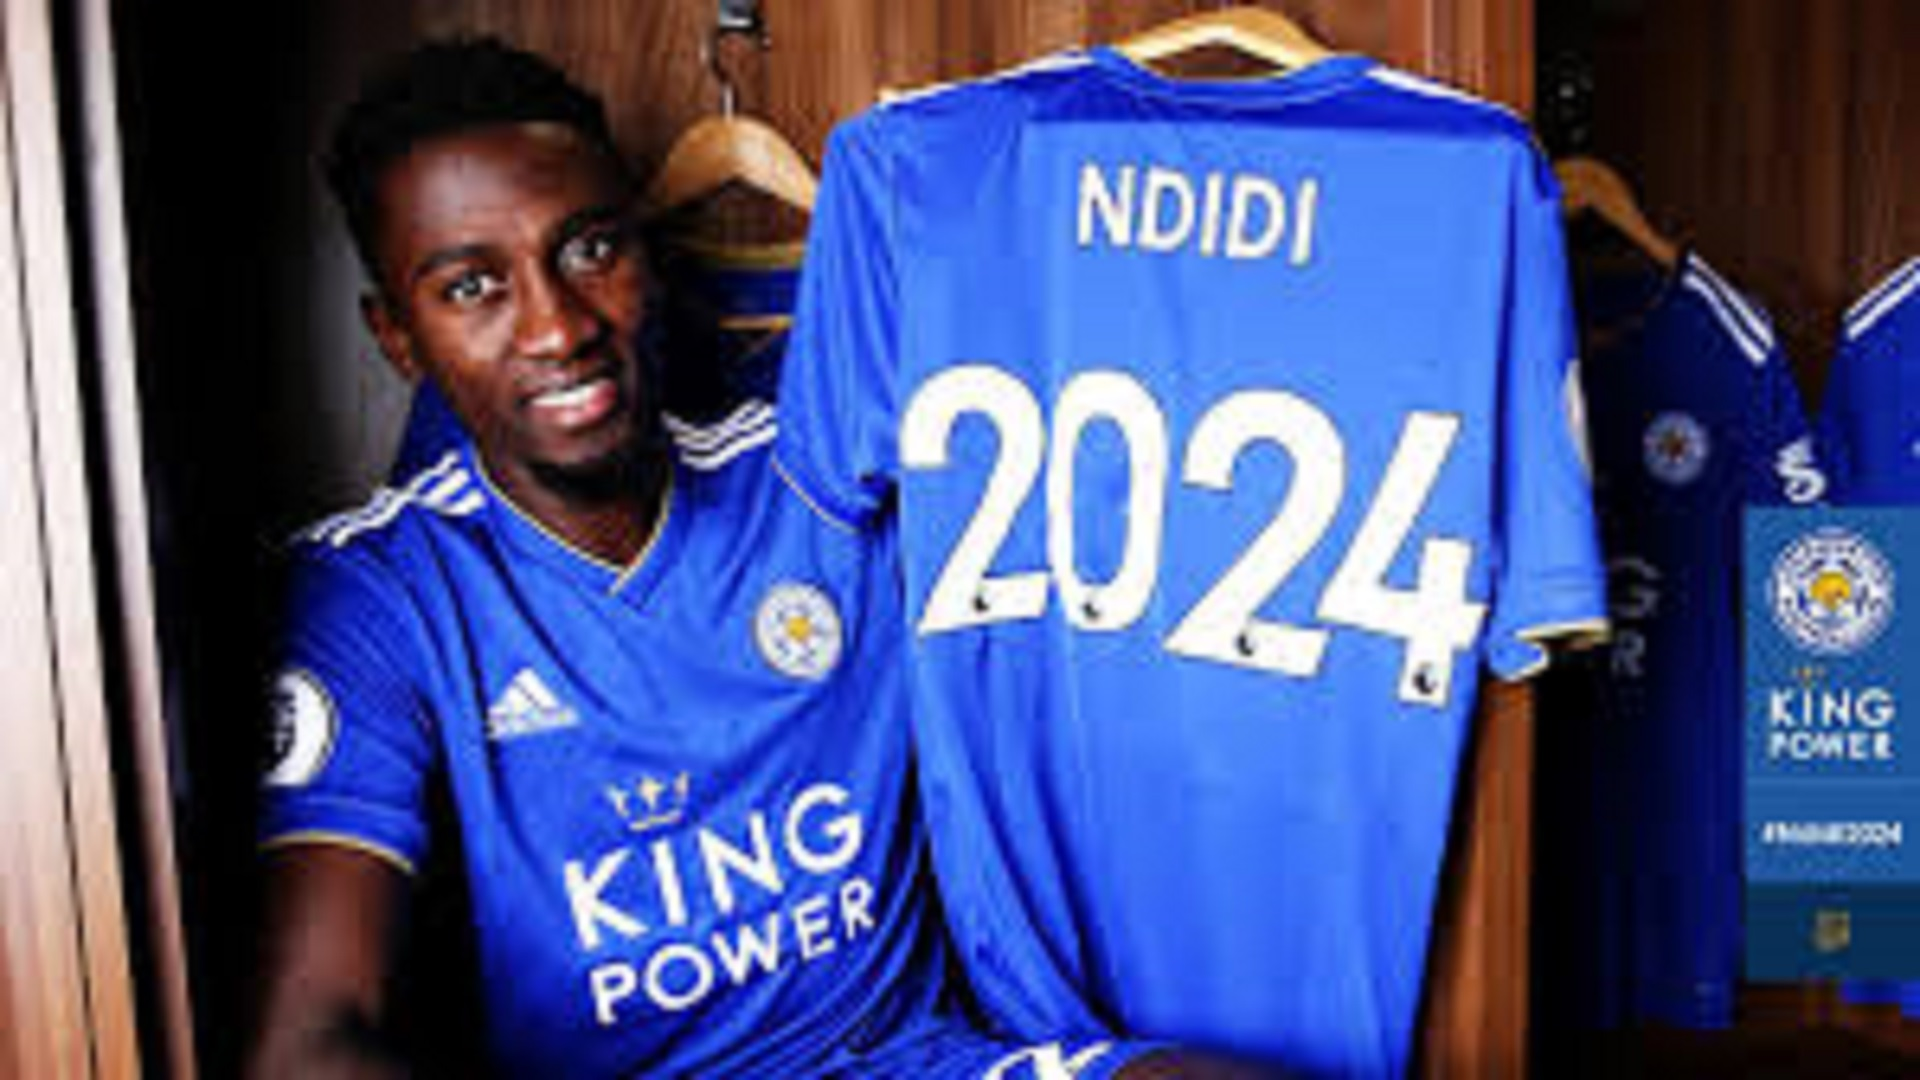 Ndidi signs until 2024